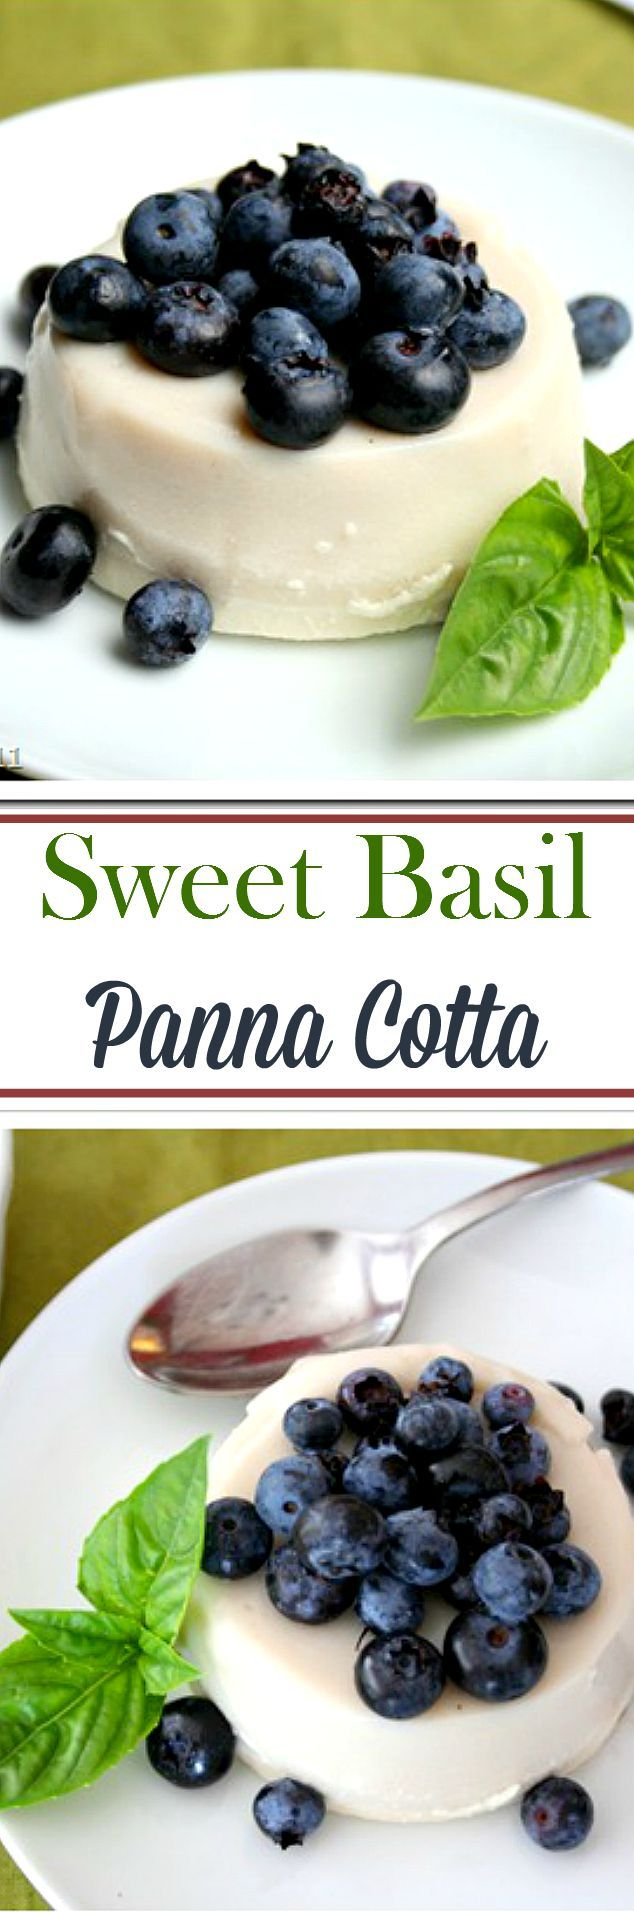 Sweet Basil Panna Cotta - Sweet, so smooth, and incredibly delicious Sweet Basil Panna Cotta! I LOVE this dessert!